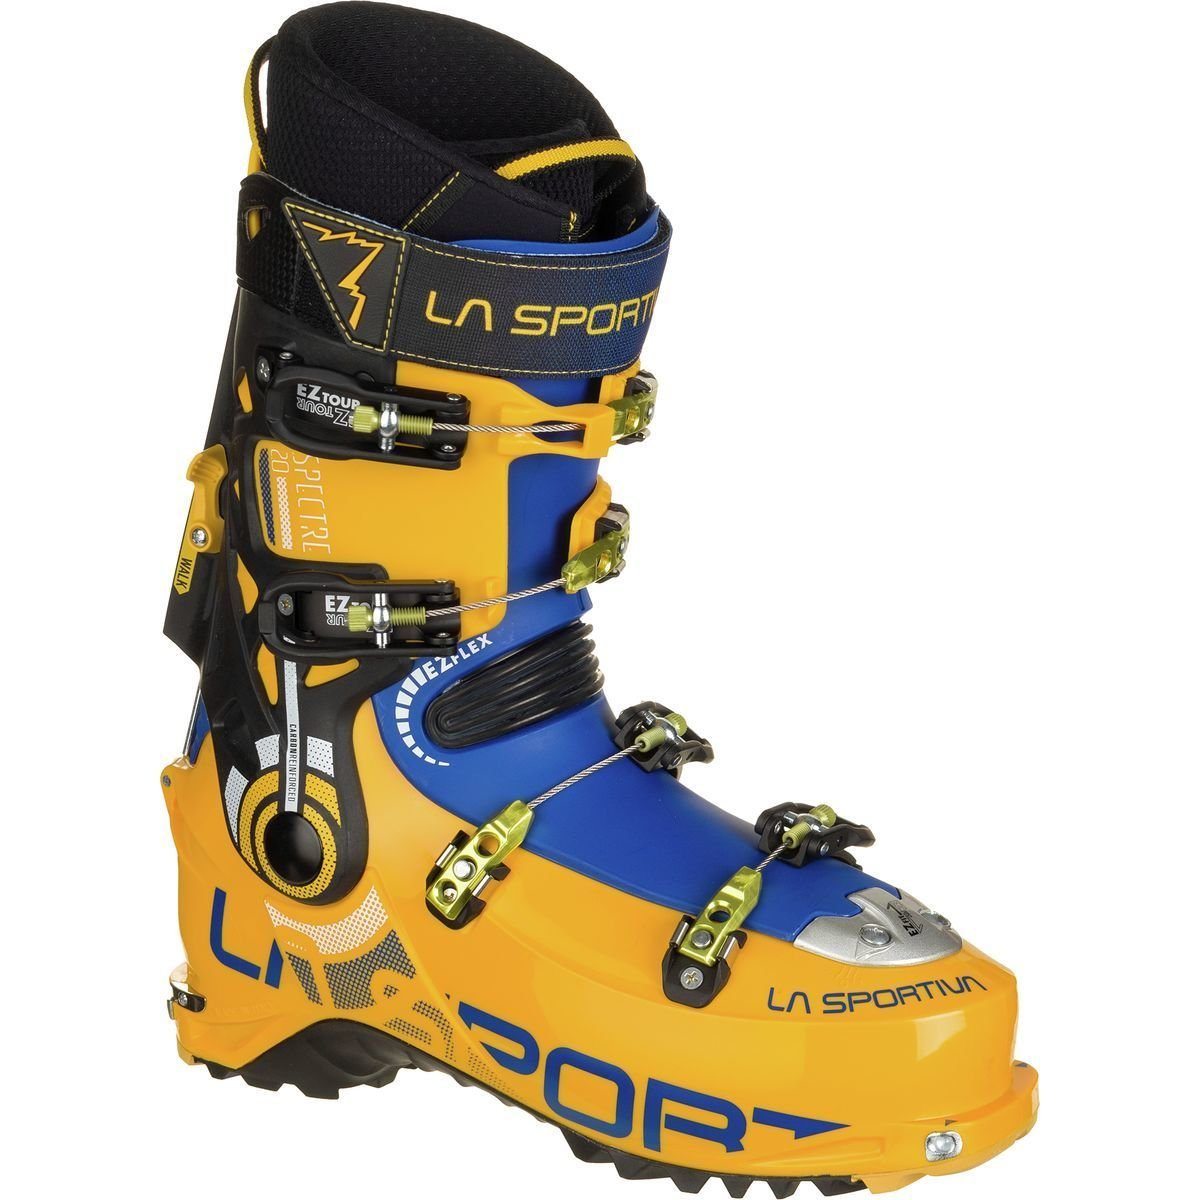 Amazon.com : La Sportiva Spectre 2.0 Alpine Touring Boot ...